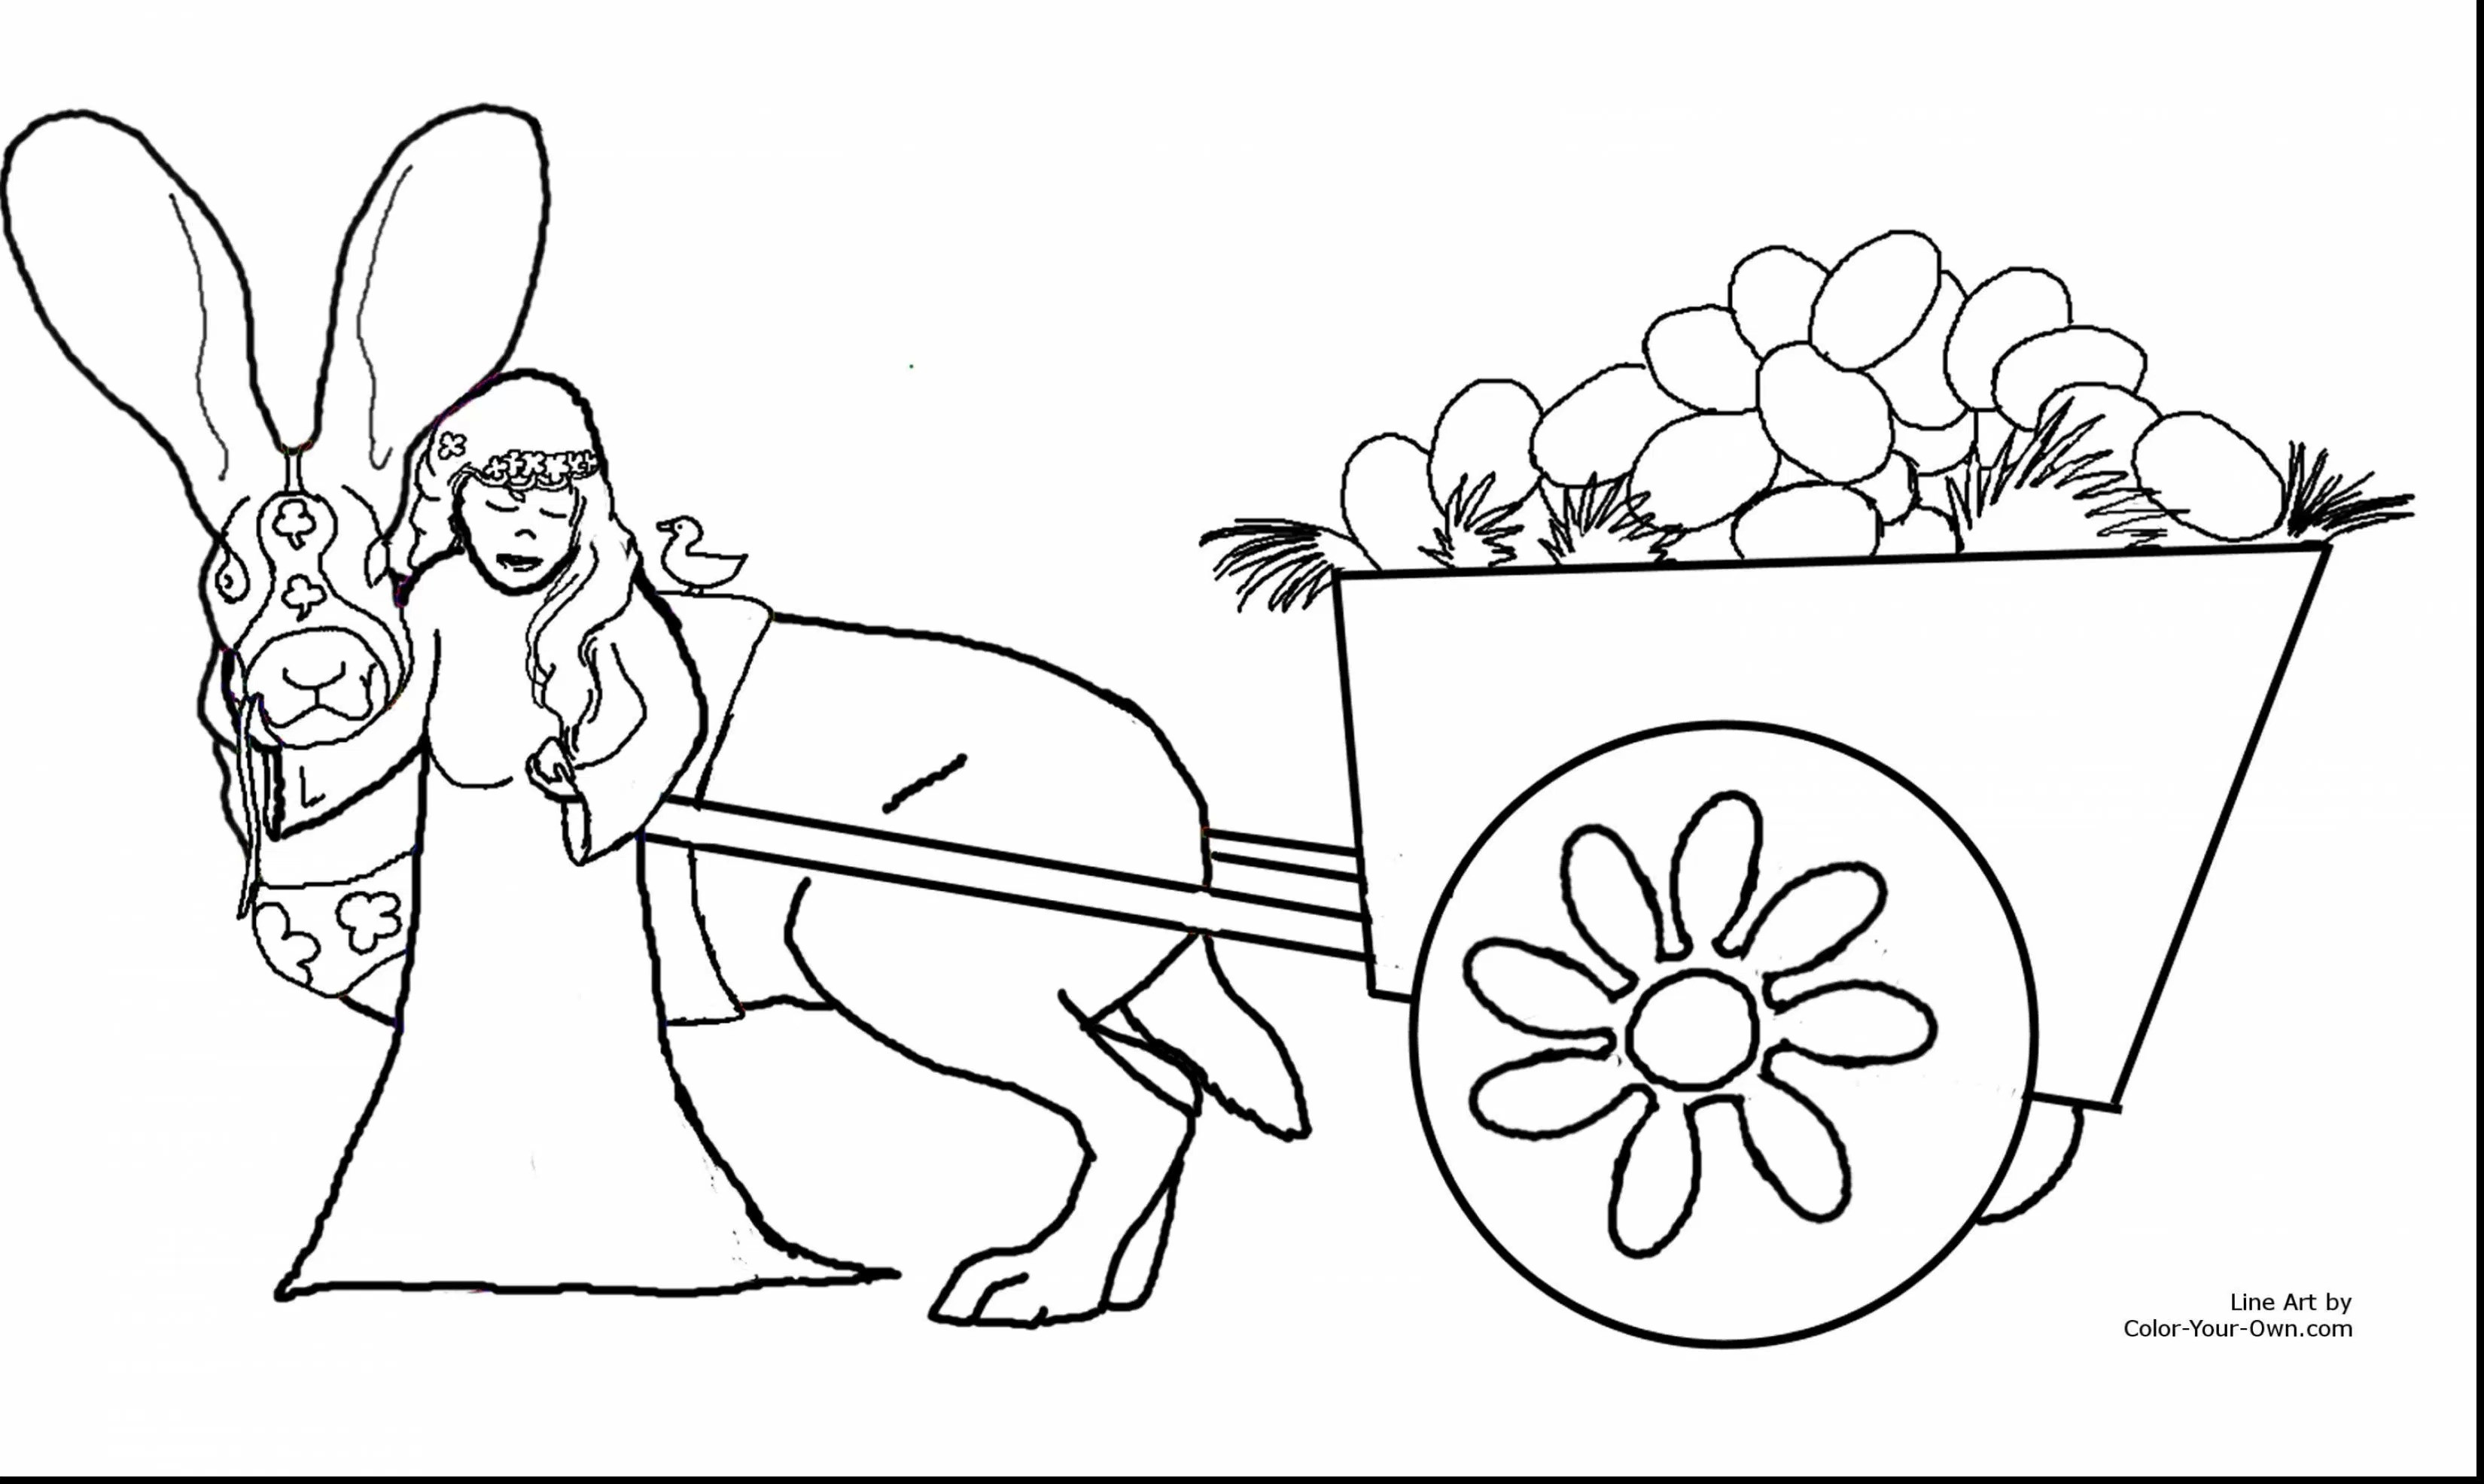 Make Your Own Coloring Pages at GetDrawings.com | Free for personal ...